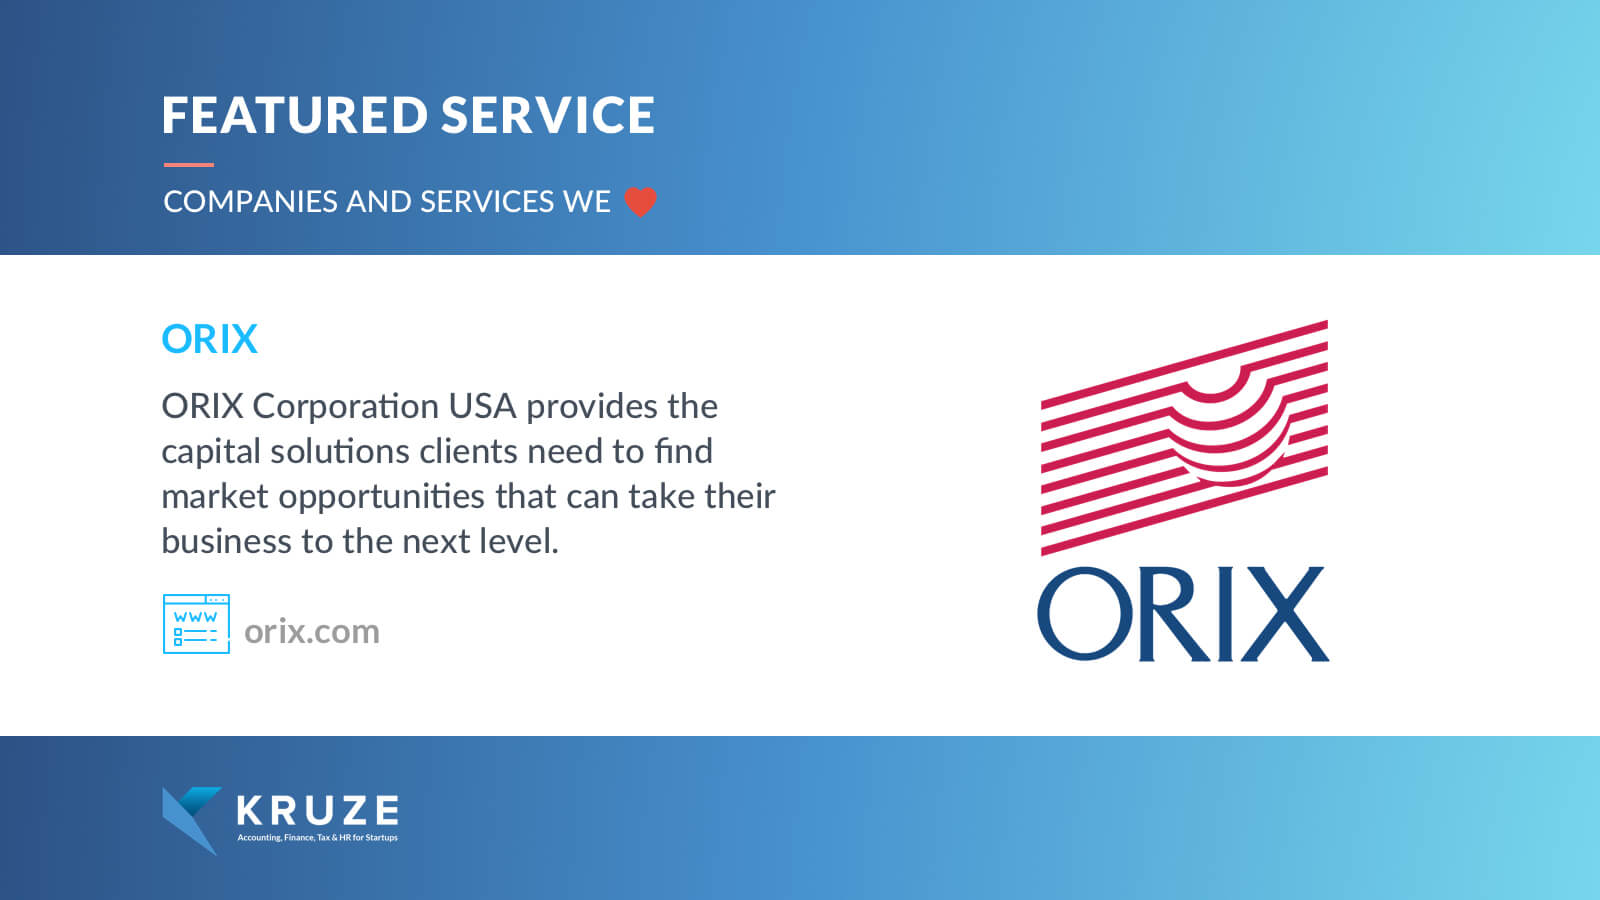 Featured Service - ORIX